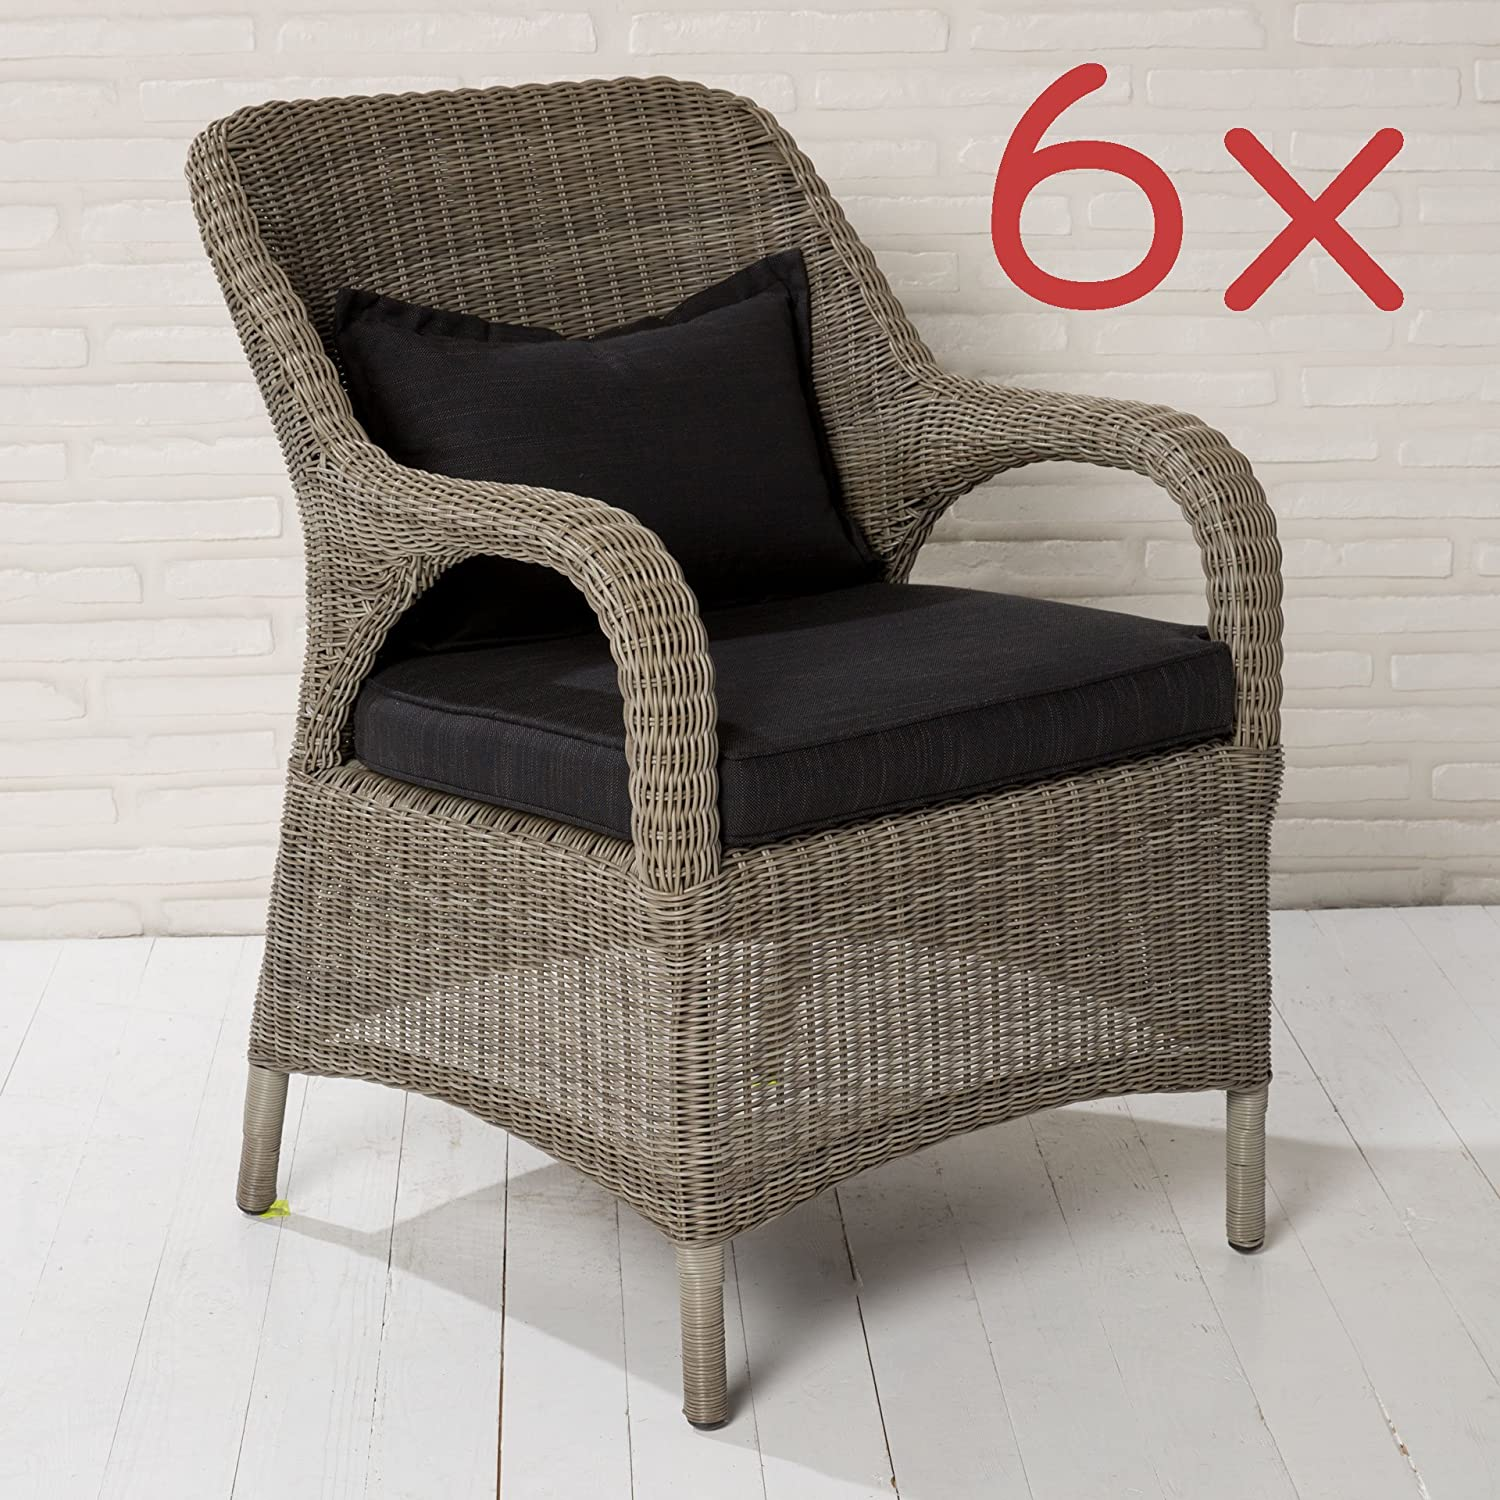 6x gartenstuhl gartensessel poly rattan braun mit sitzkissen gartenm bel stuhl online bestellen. Black Bedroom Furniture Sets. Home Design Ideas